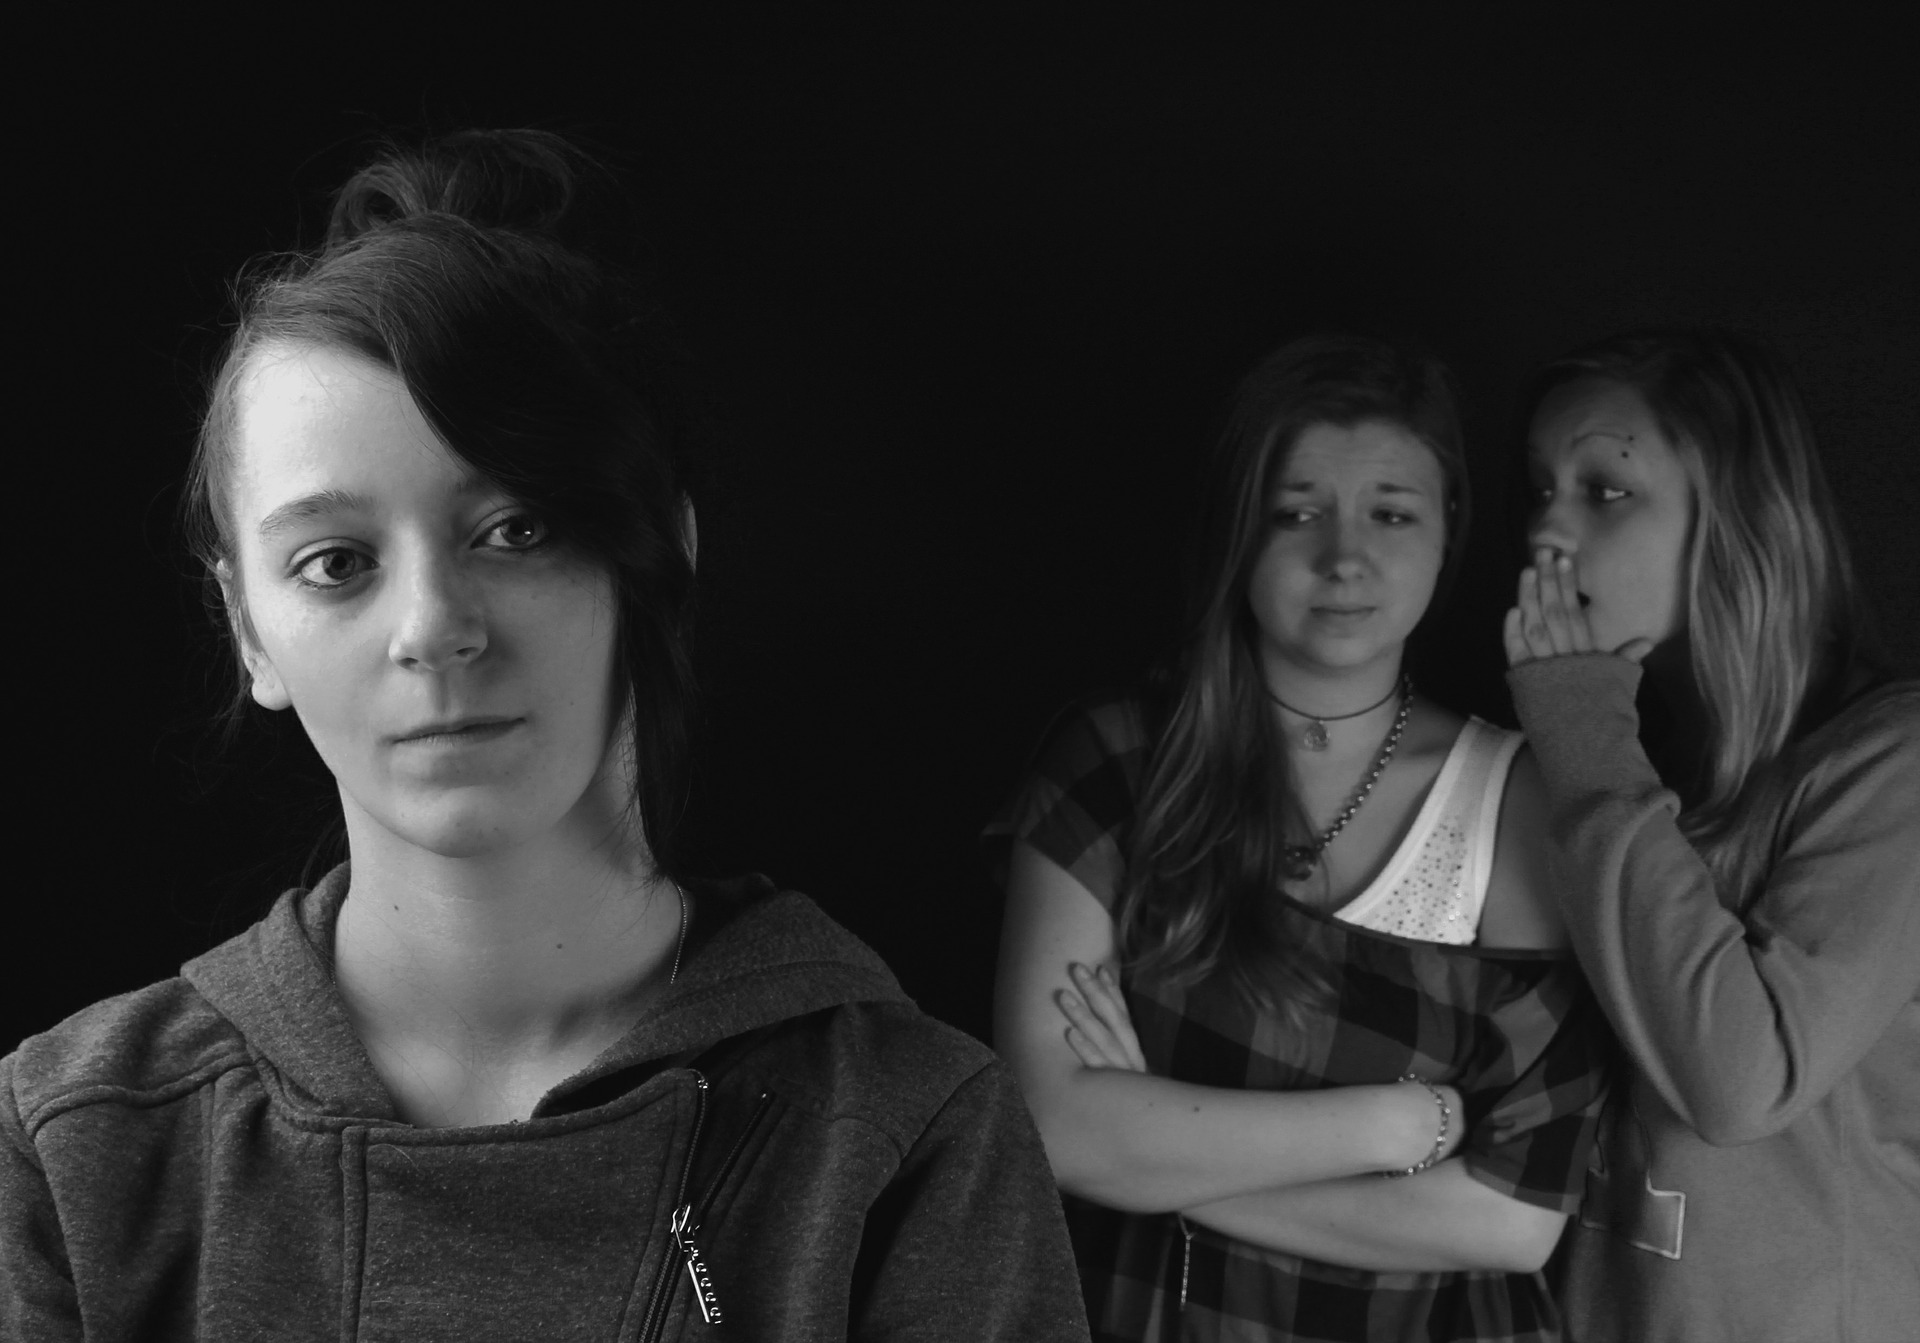 A teenager alone with two other teenagers gossping about her in the background